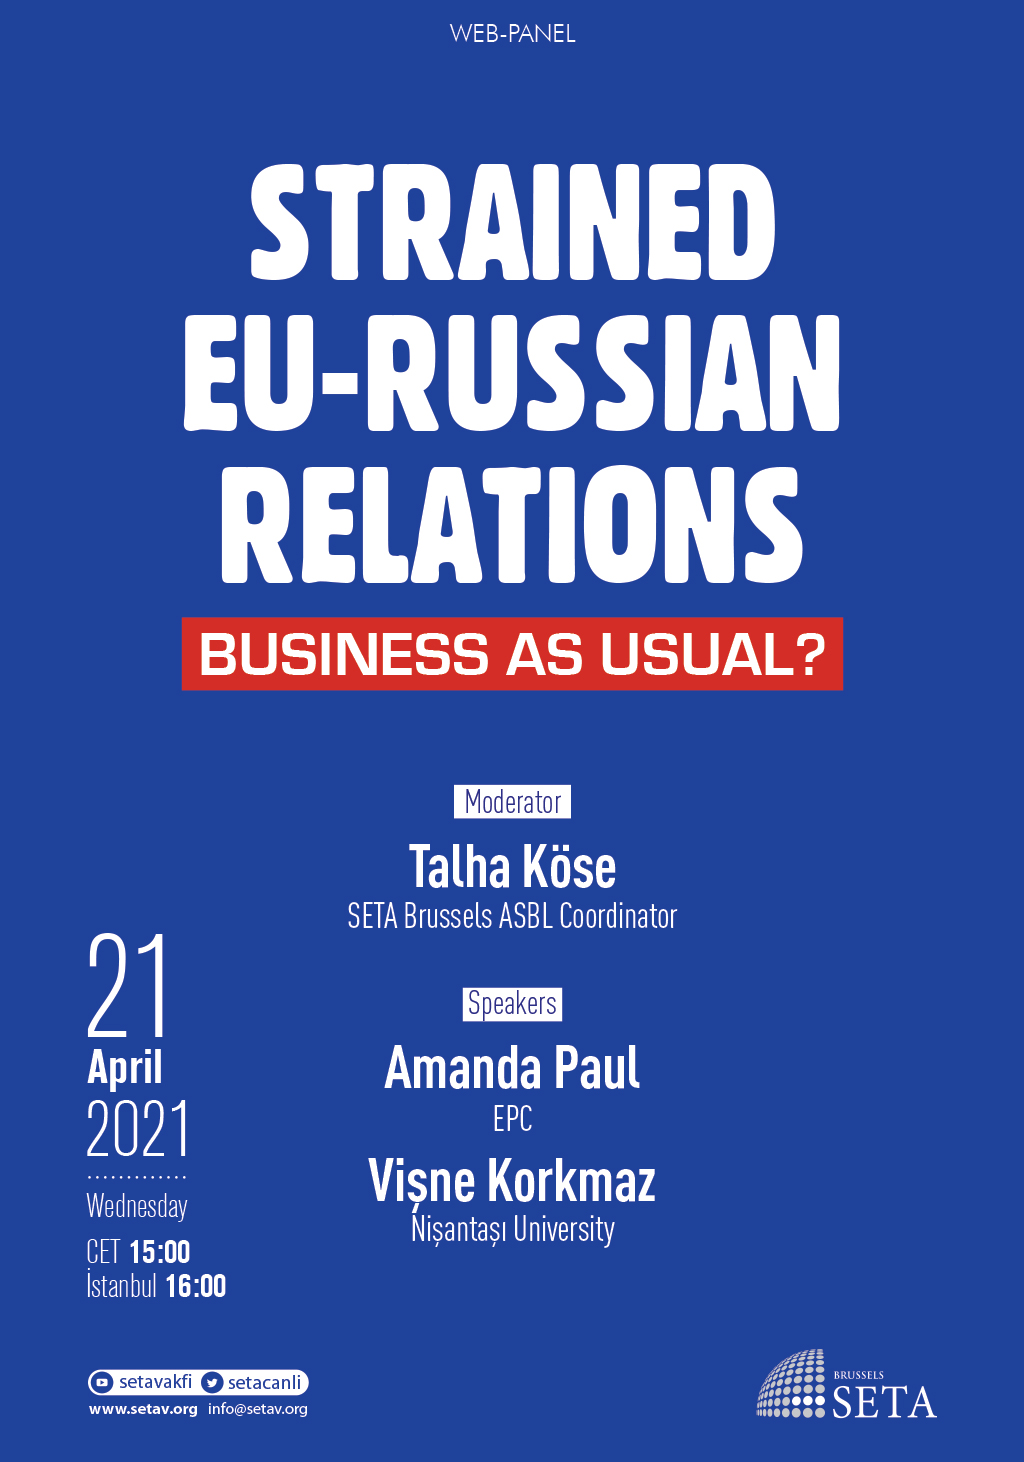 Web Panel: Strained EU-Russian Relations | Business as Usual?